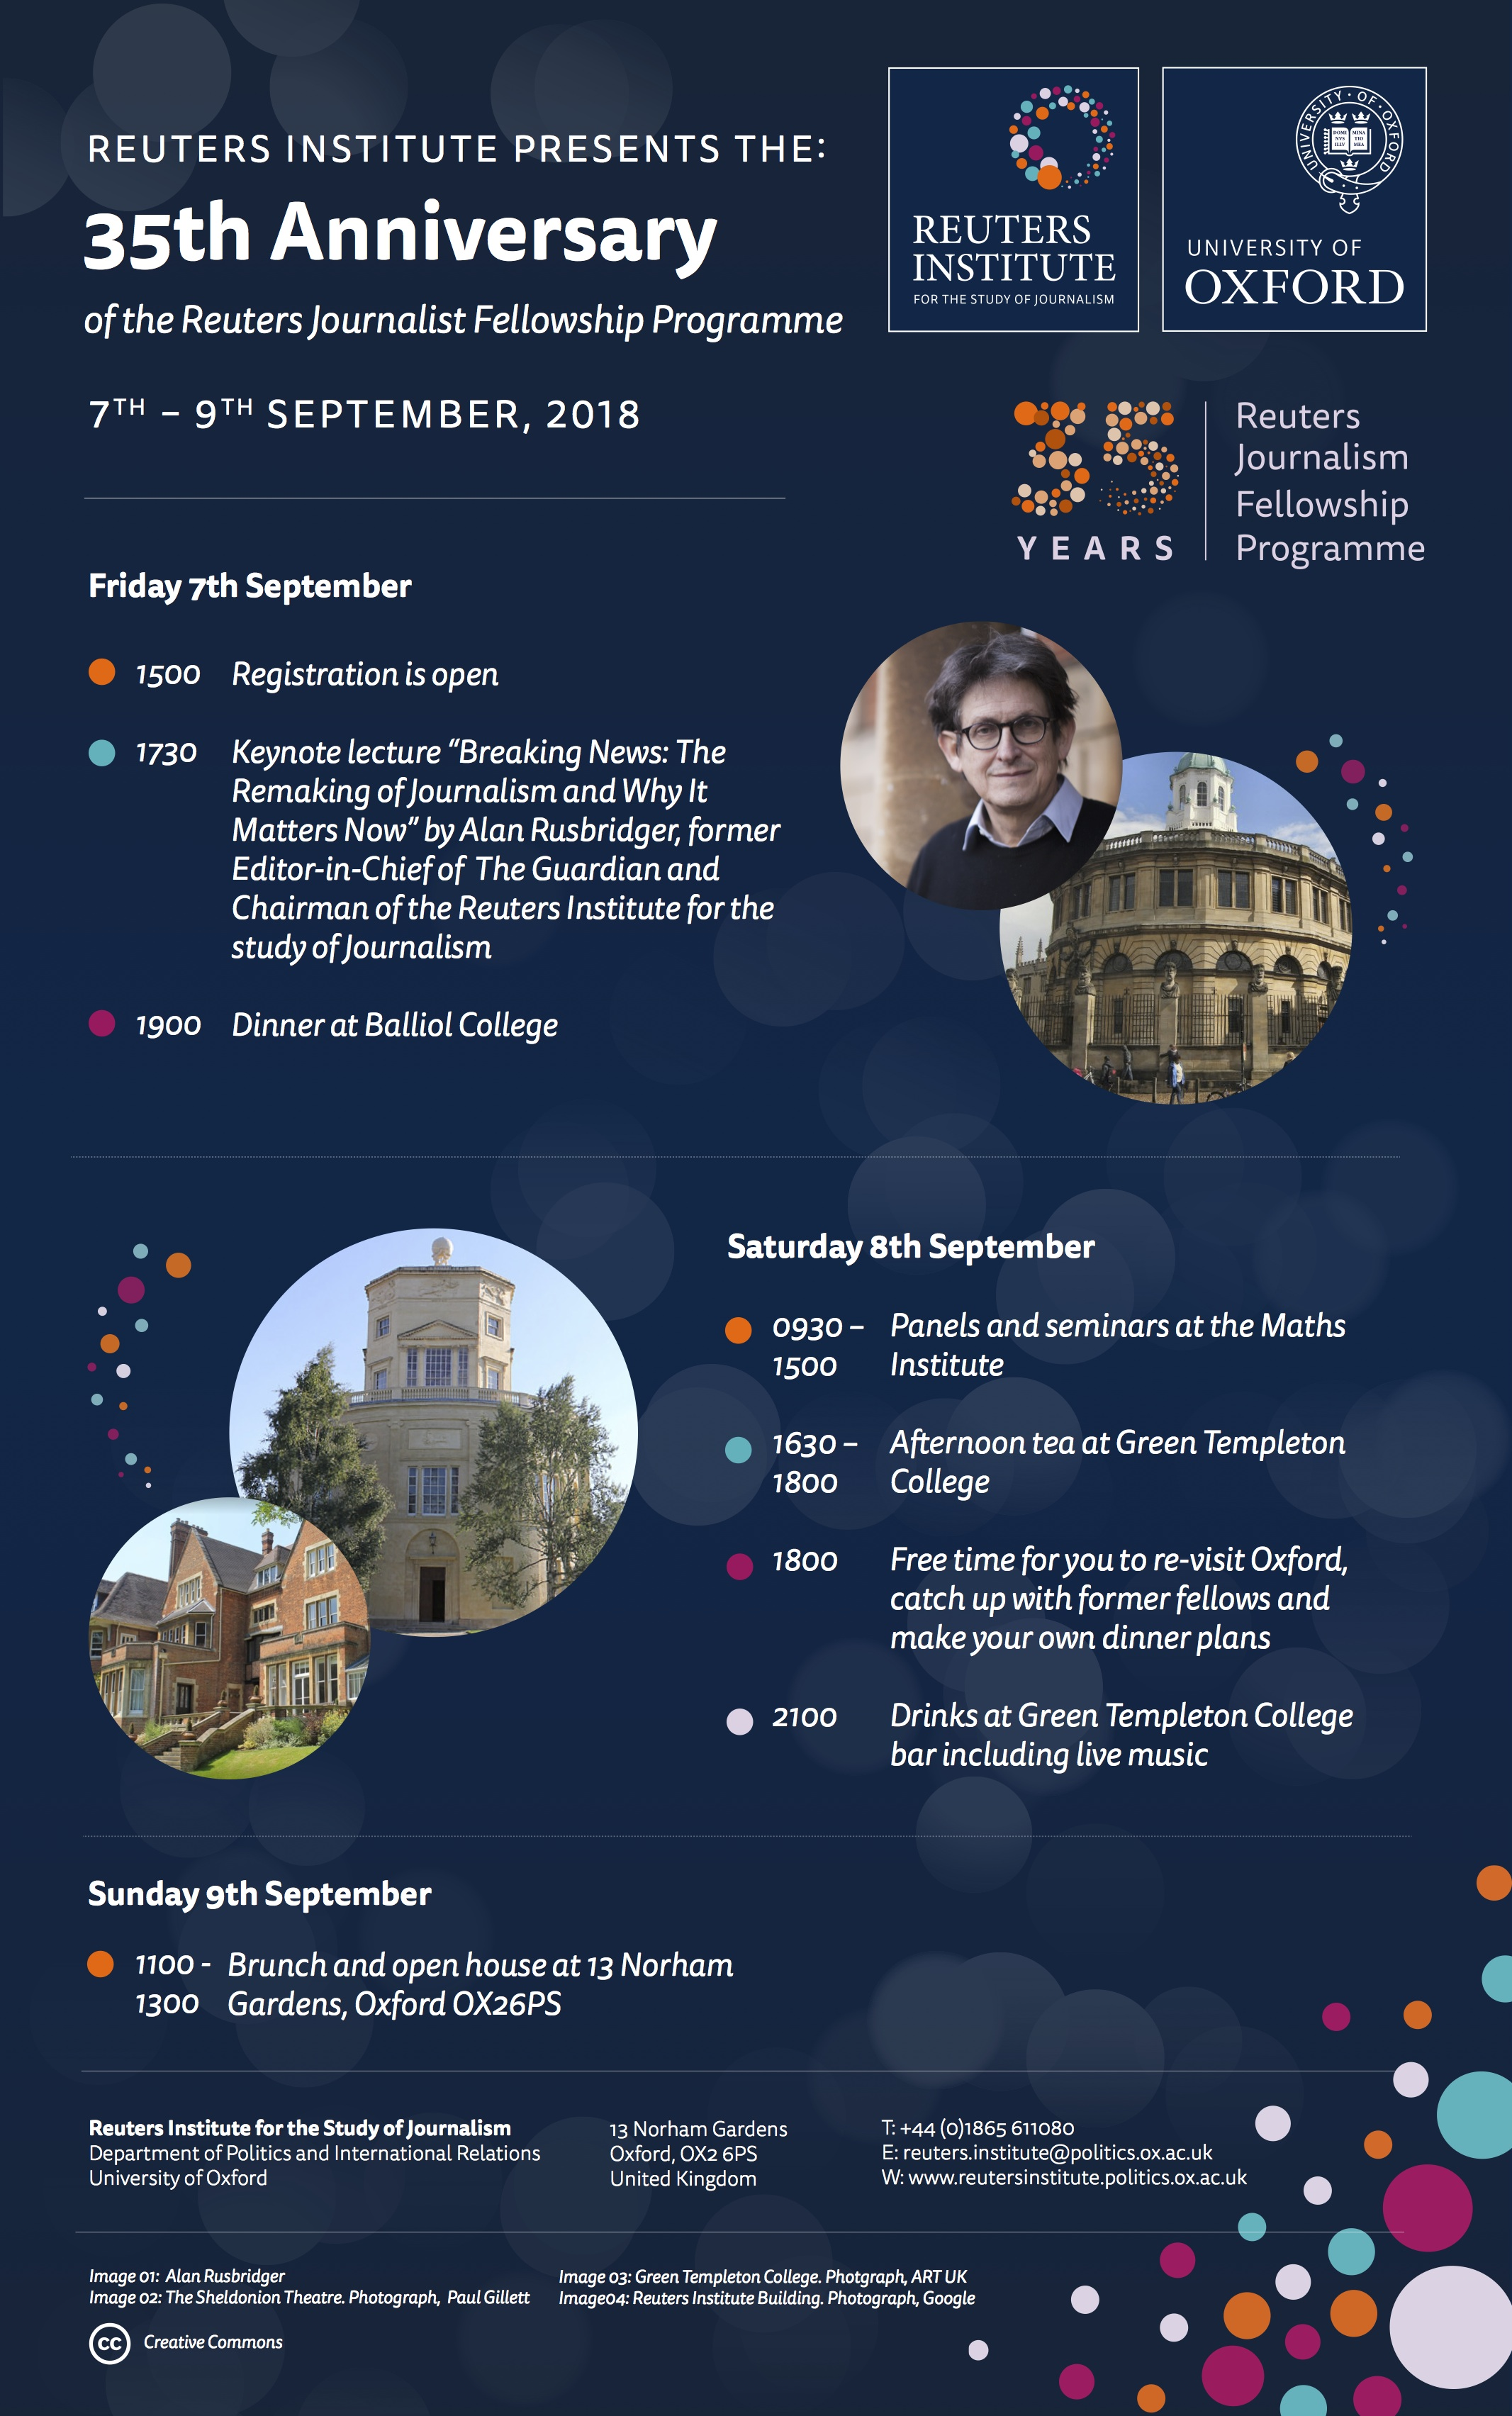 35th Anniversary weekend, programme of events